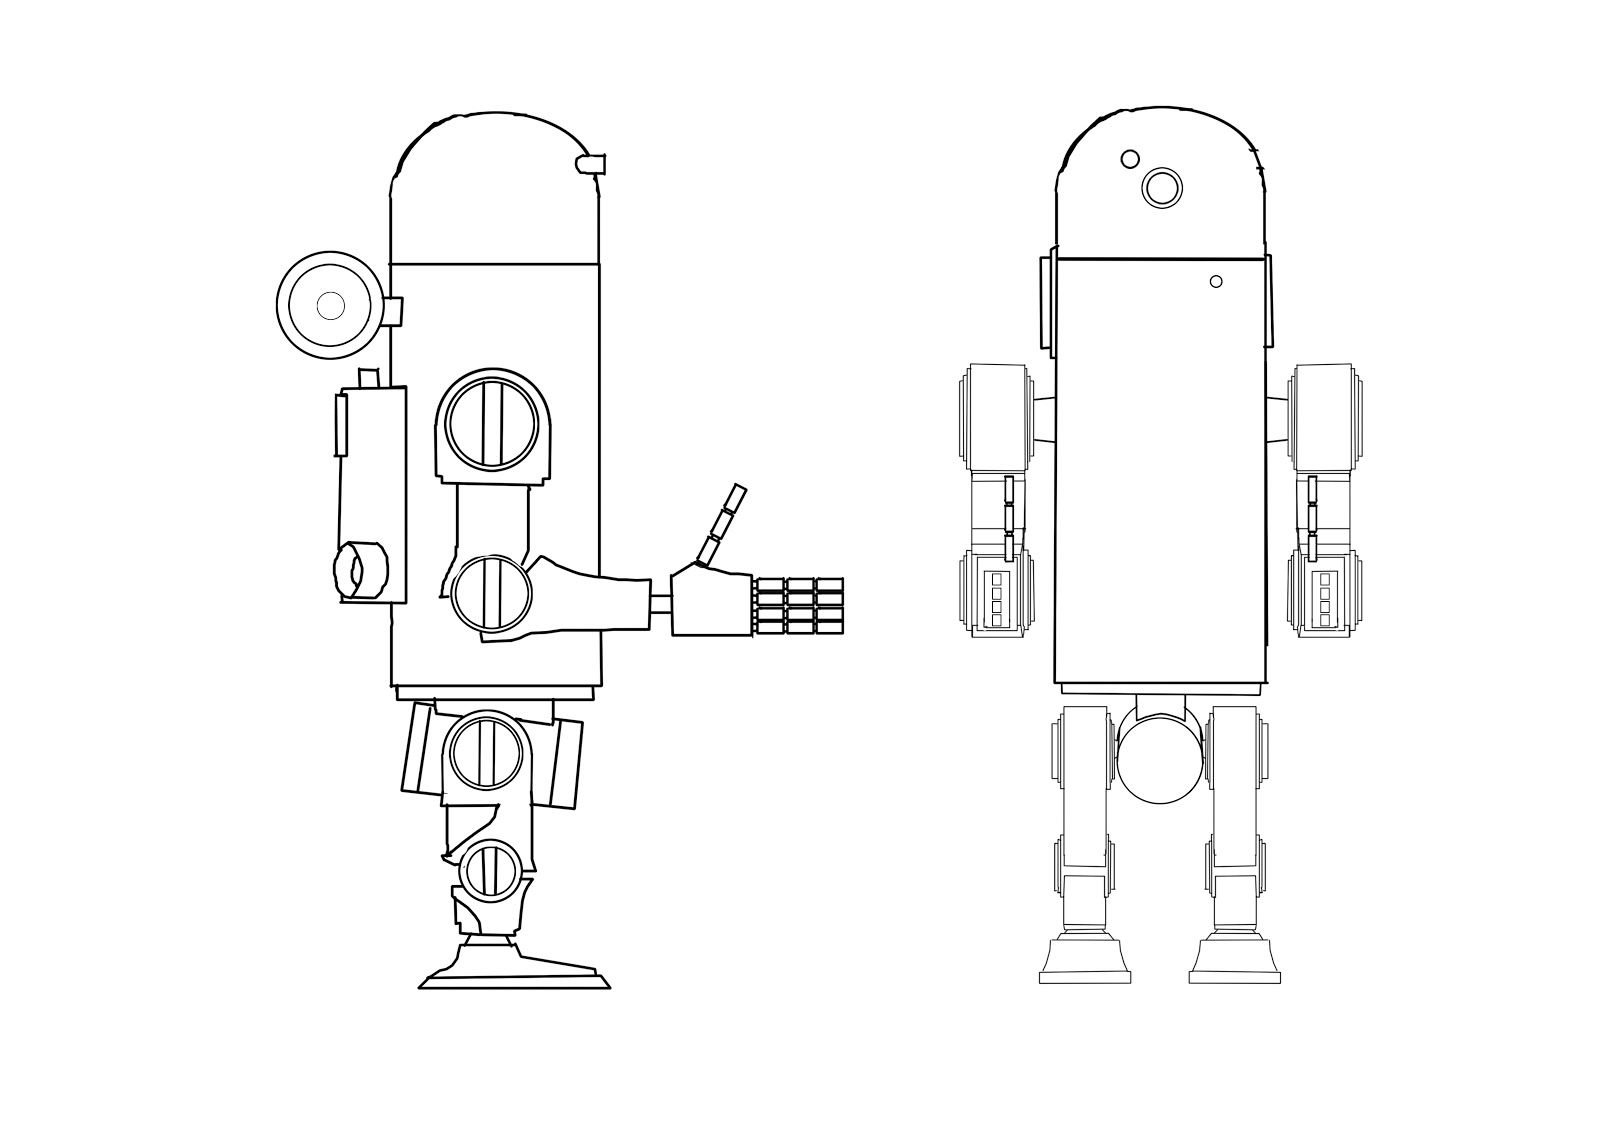 how to create a simple robot